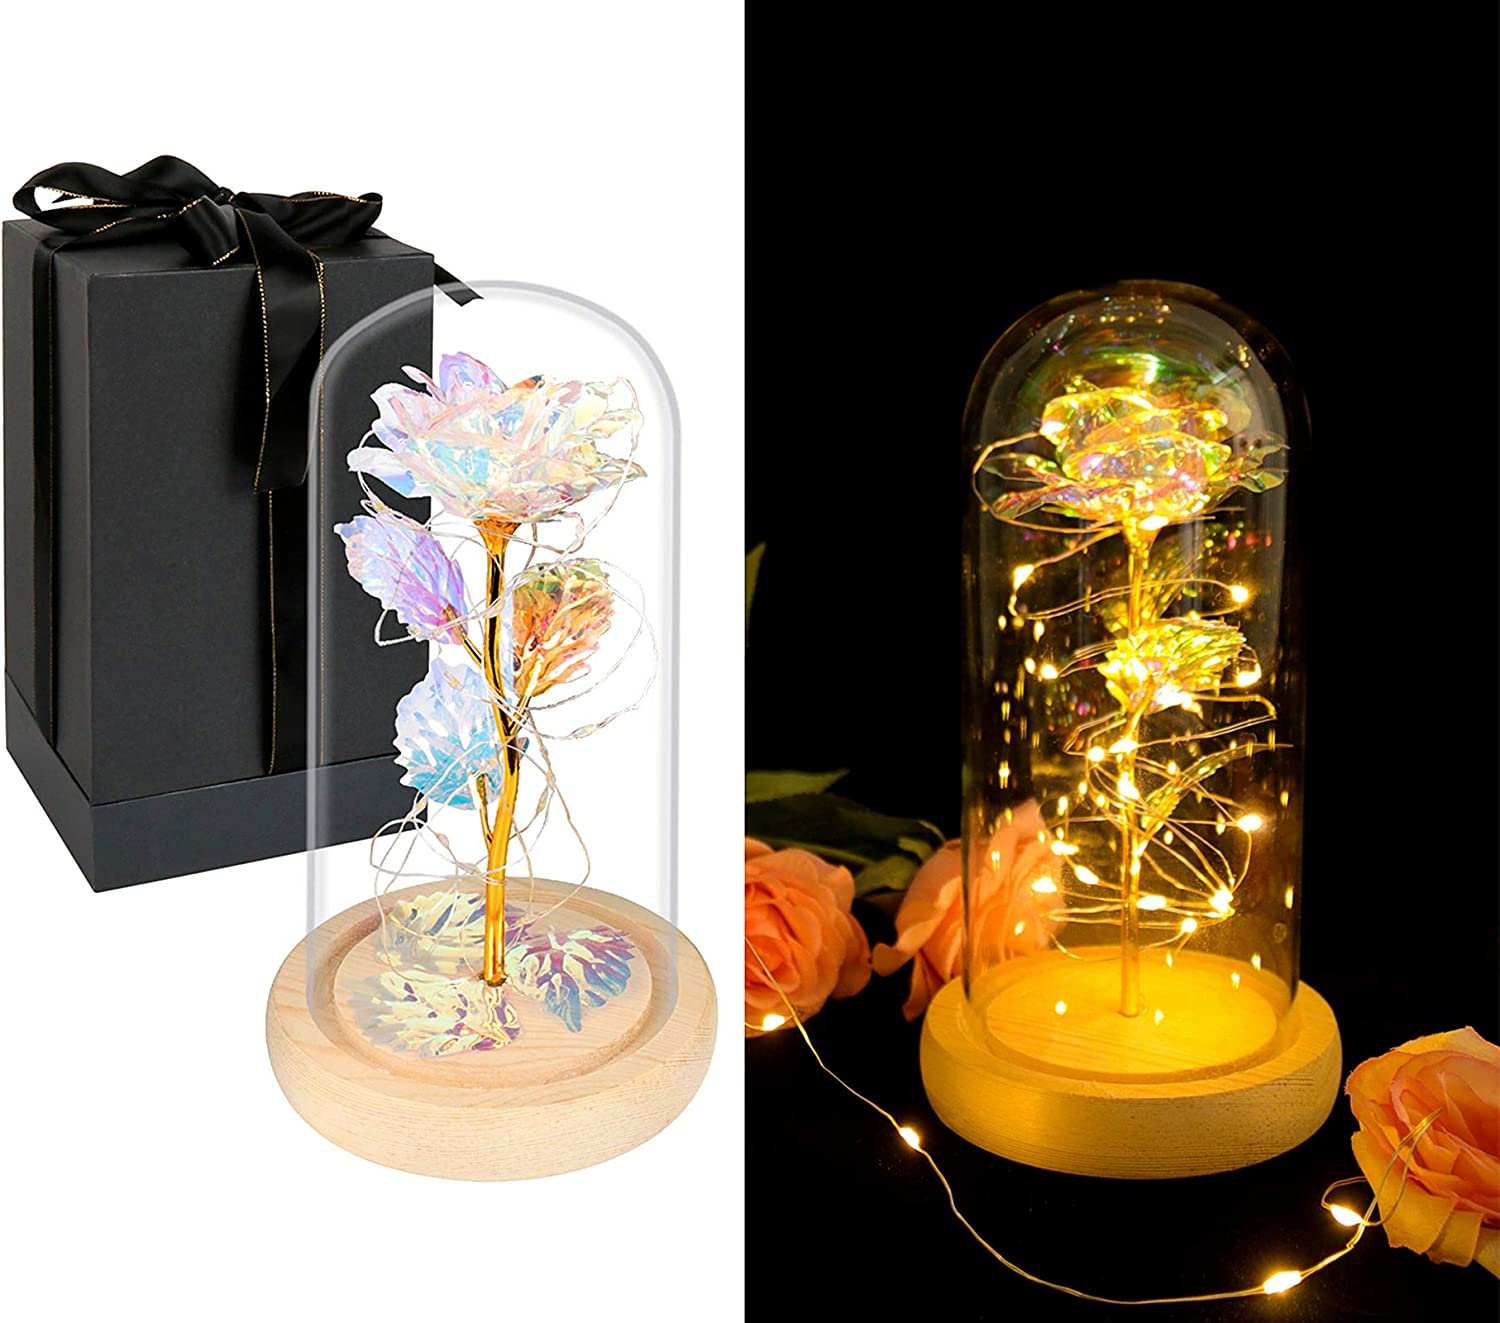 DEEMEI Galaxy Rose 24K Gold Foil Colorful Flower in Glass Dome with Led String Light Colorful Rose Unique Gifts for Her Women Birthday Mother's Day Valentine's Day Anniversary